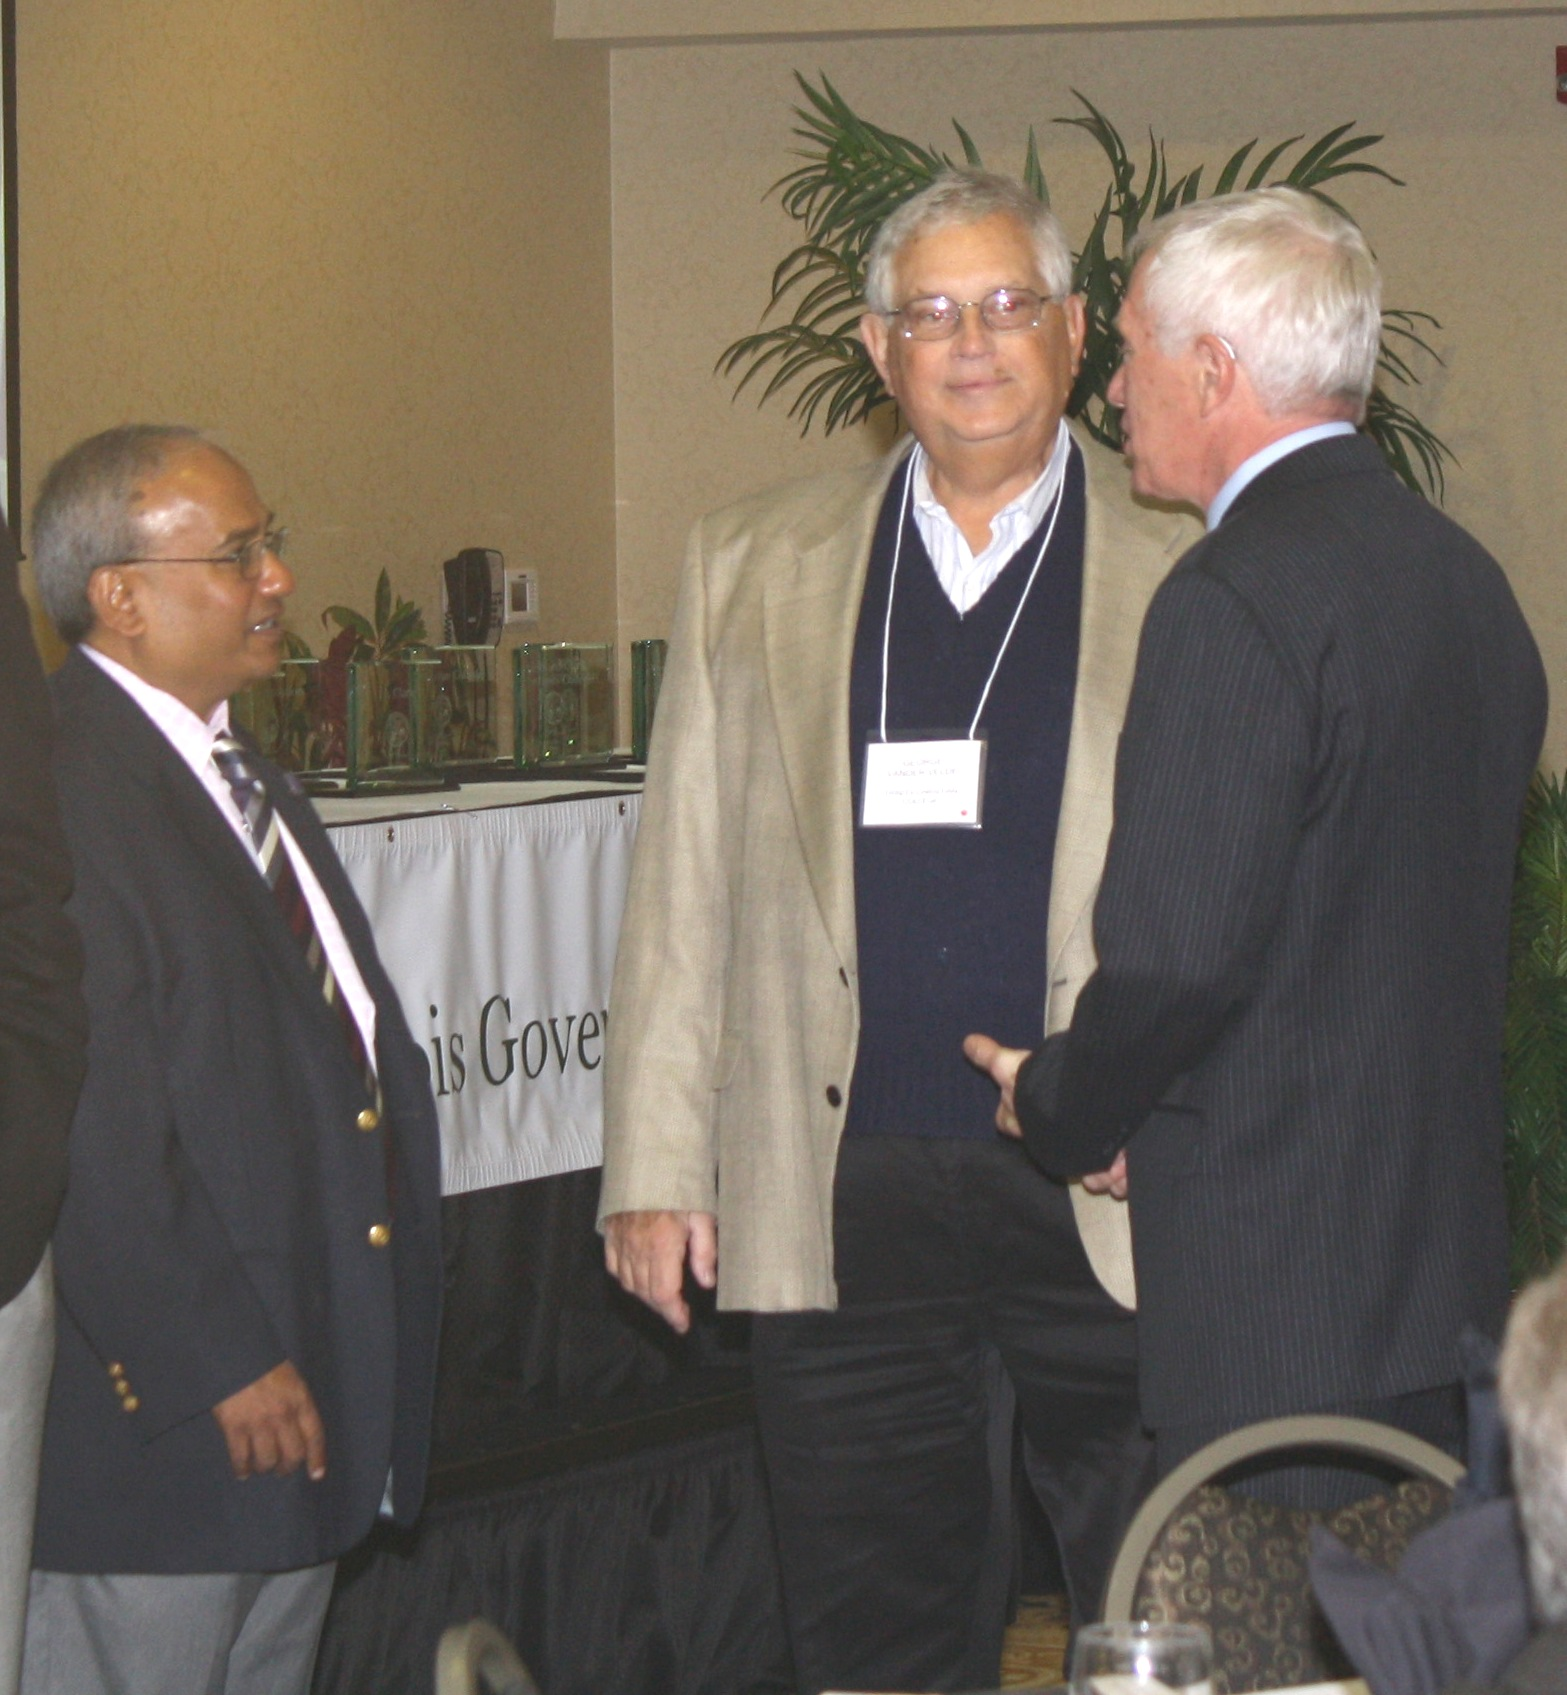 Manohar Kulkarni, former ISTC Director, speaks with past ISTC Director George VanderVelde and Gary Miller